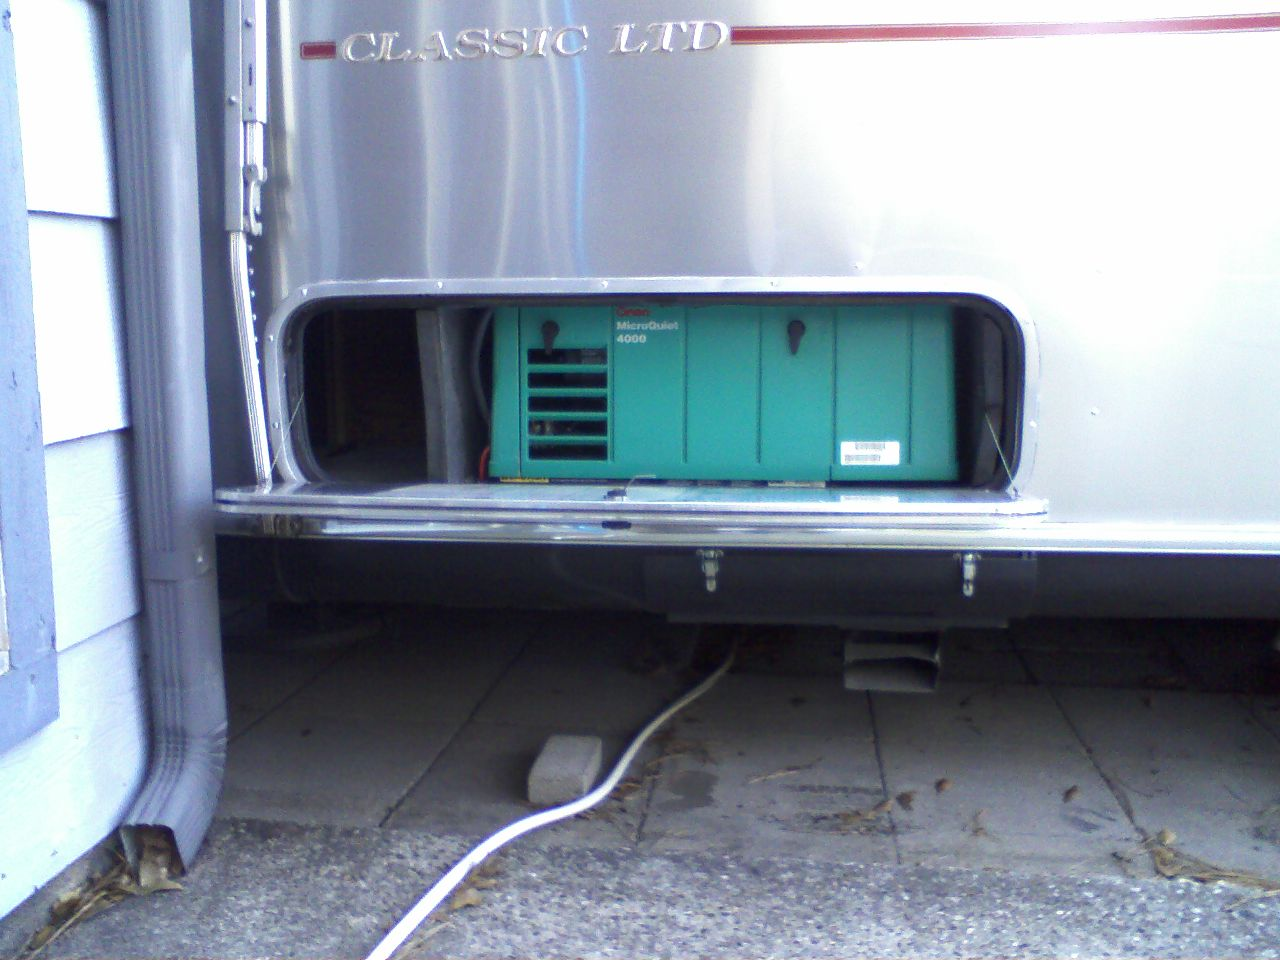 Click image for larger version  Name:Genset Access1.jpg Views:125 Size:155.3 KB ID:123465